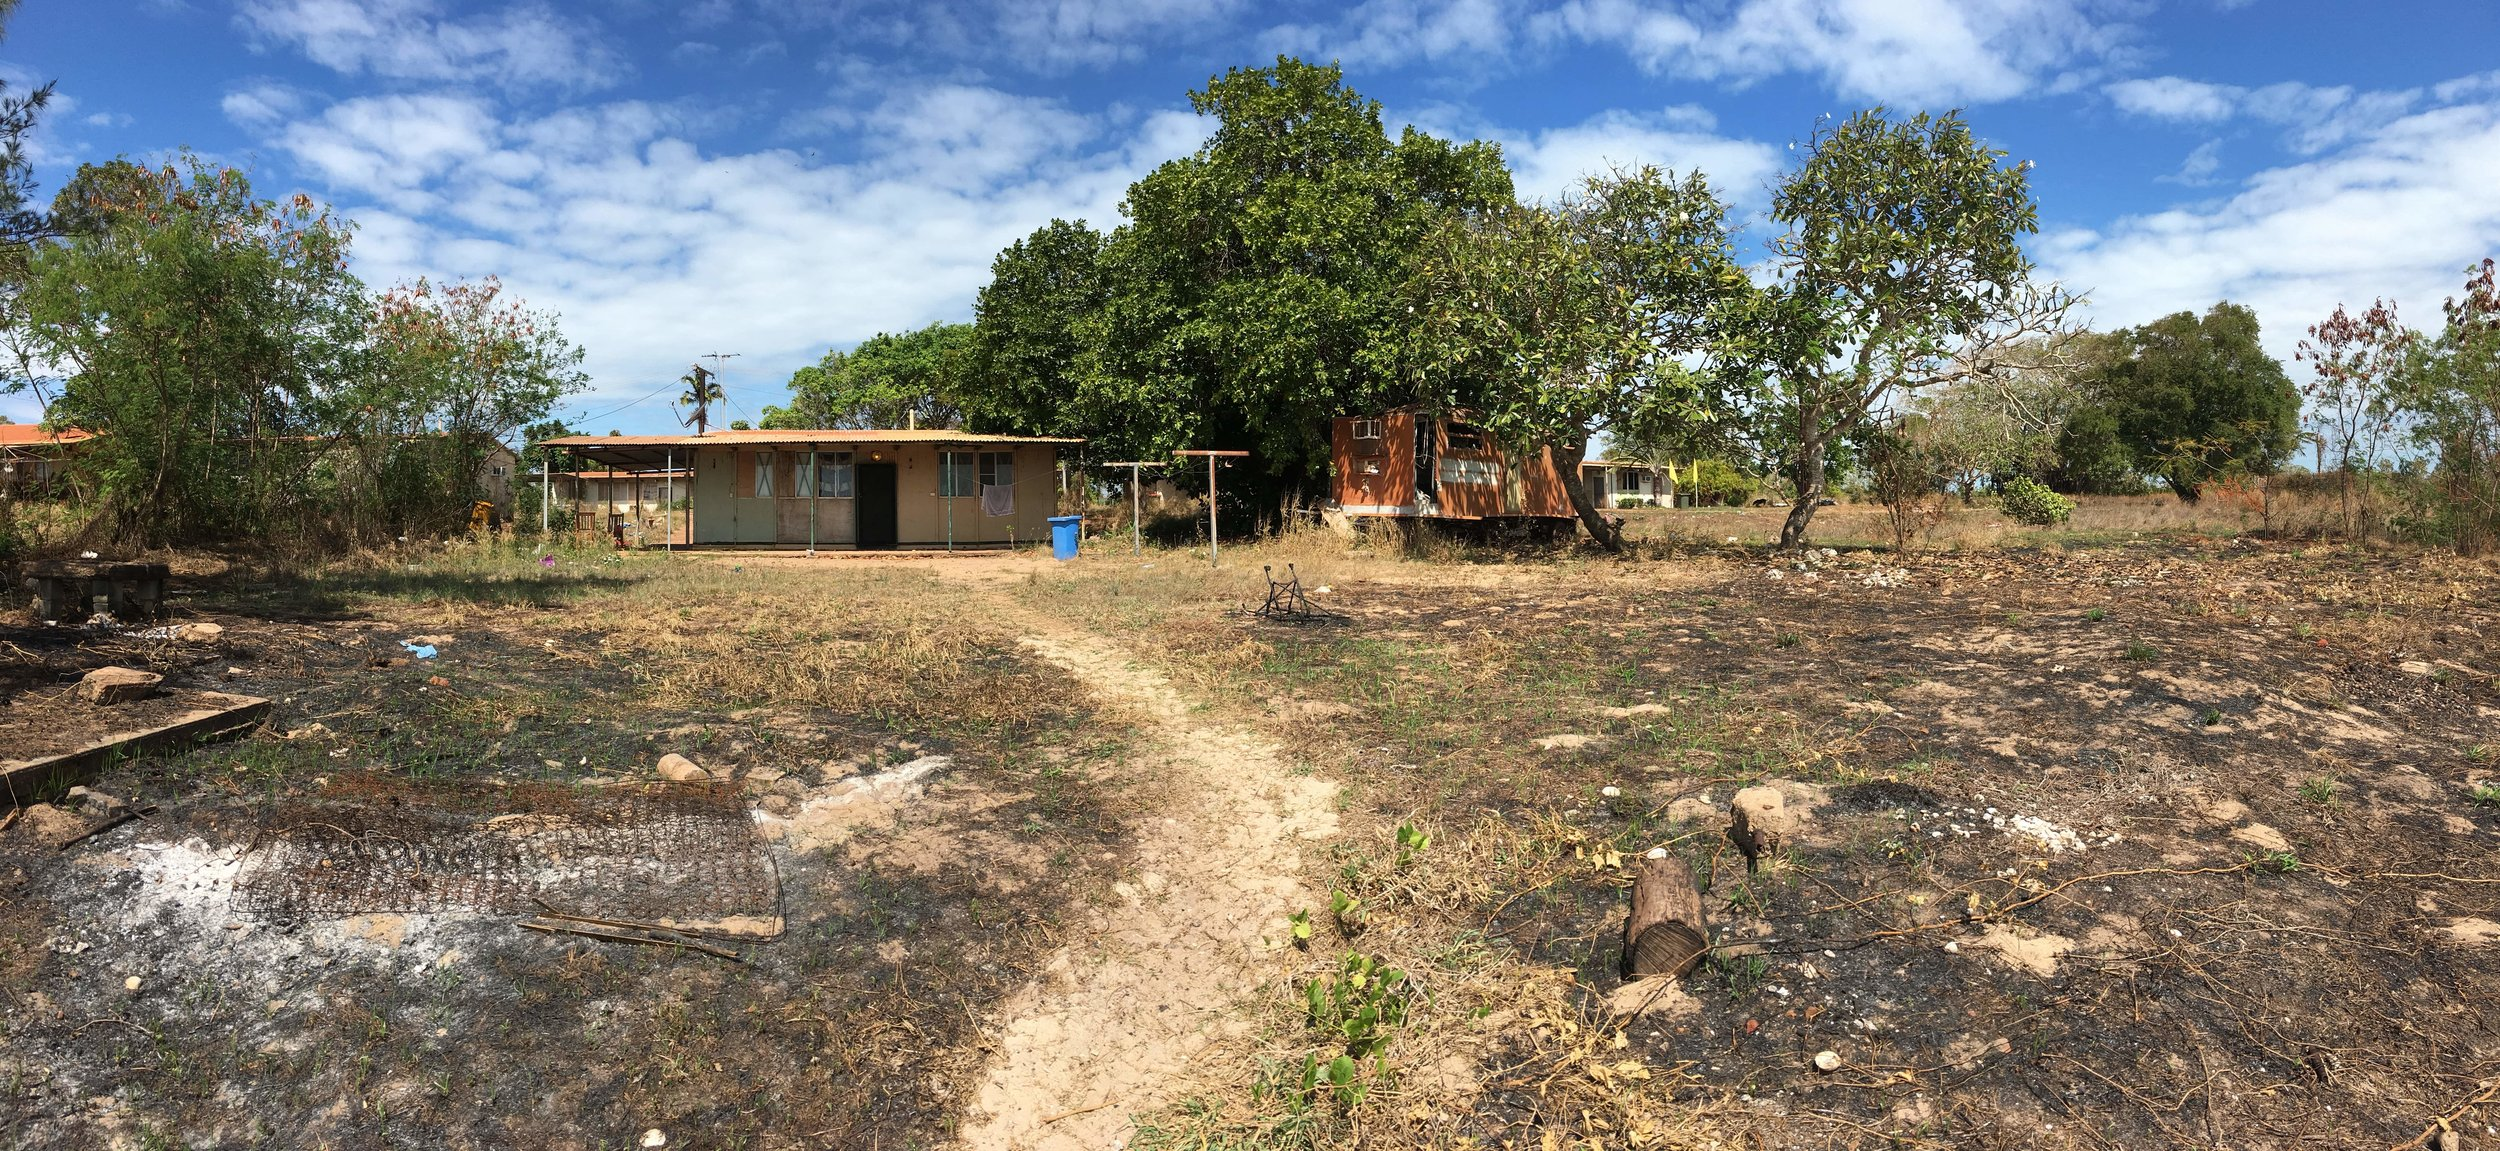 My home for 10 days at Wallaby Beach, 10km from the nearby town of Nhulunbuy. These houses were built by a mining company thirty odd years ago using asbestos and concrete. All in disrepair,they are nestled in paradise.